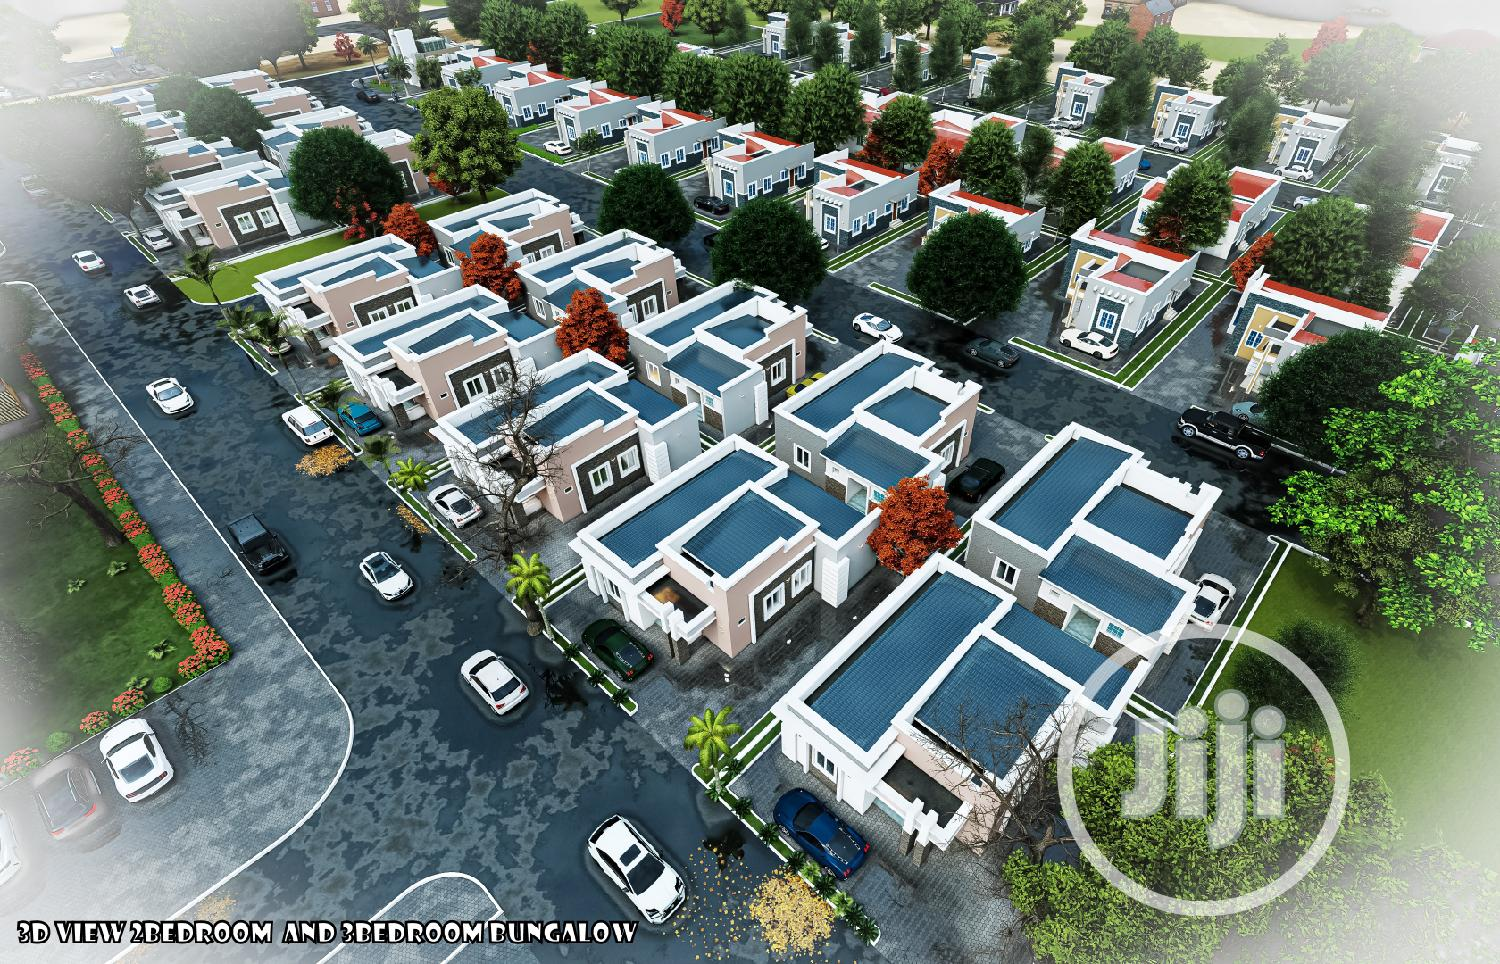 Archive: 1,2 And Bedroom Bungalows For Sale